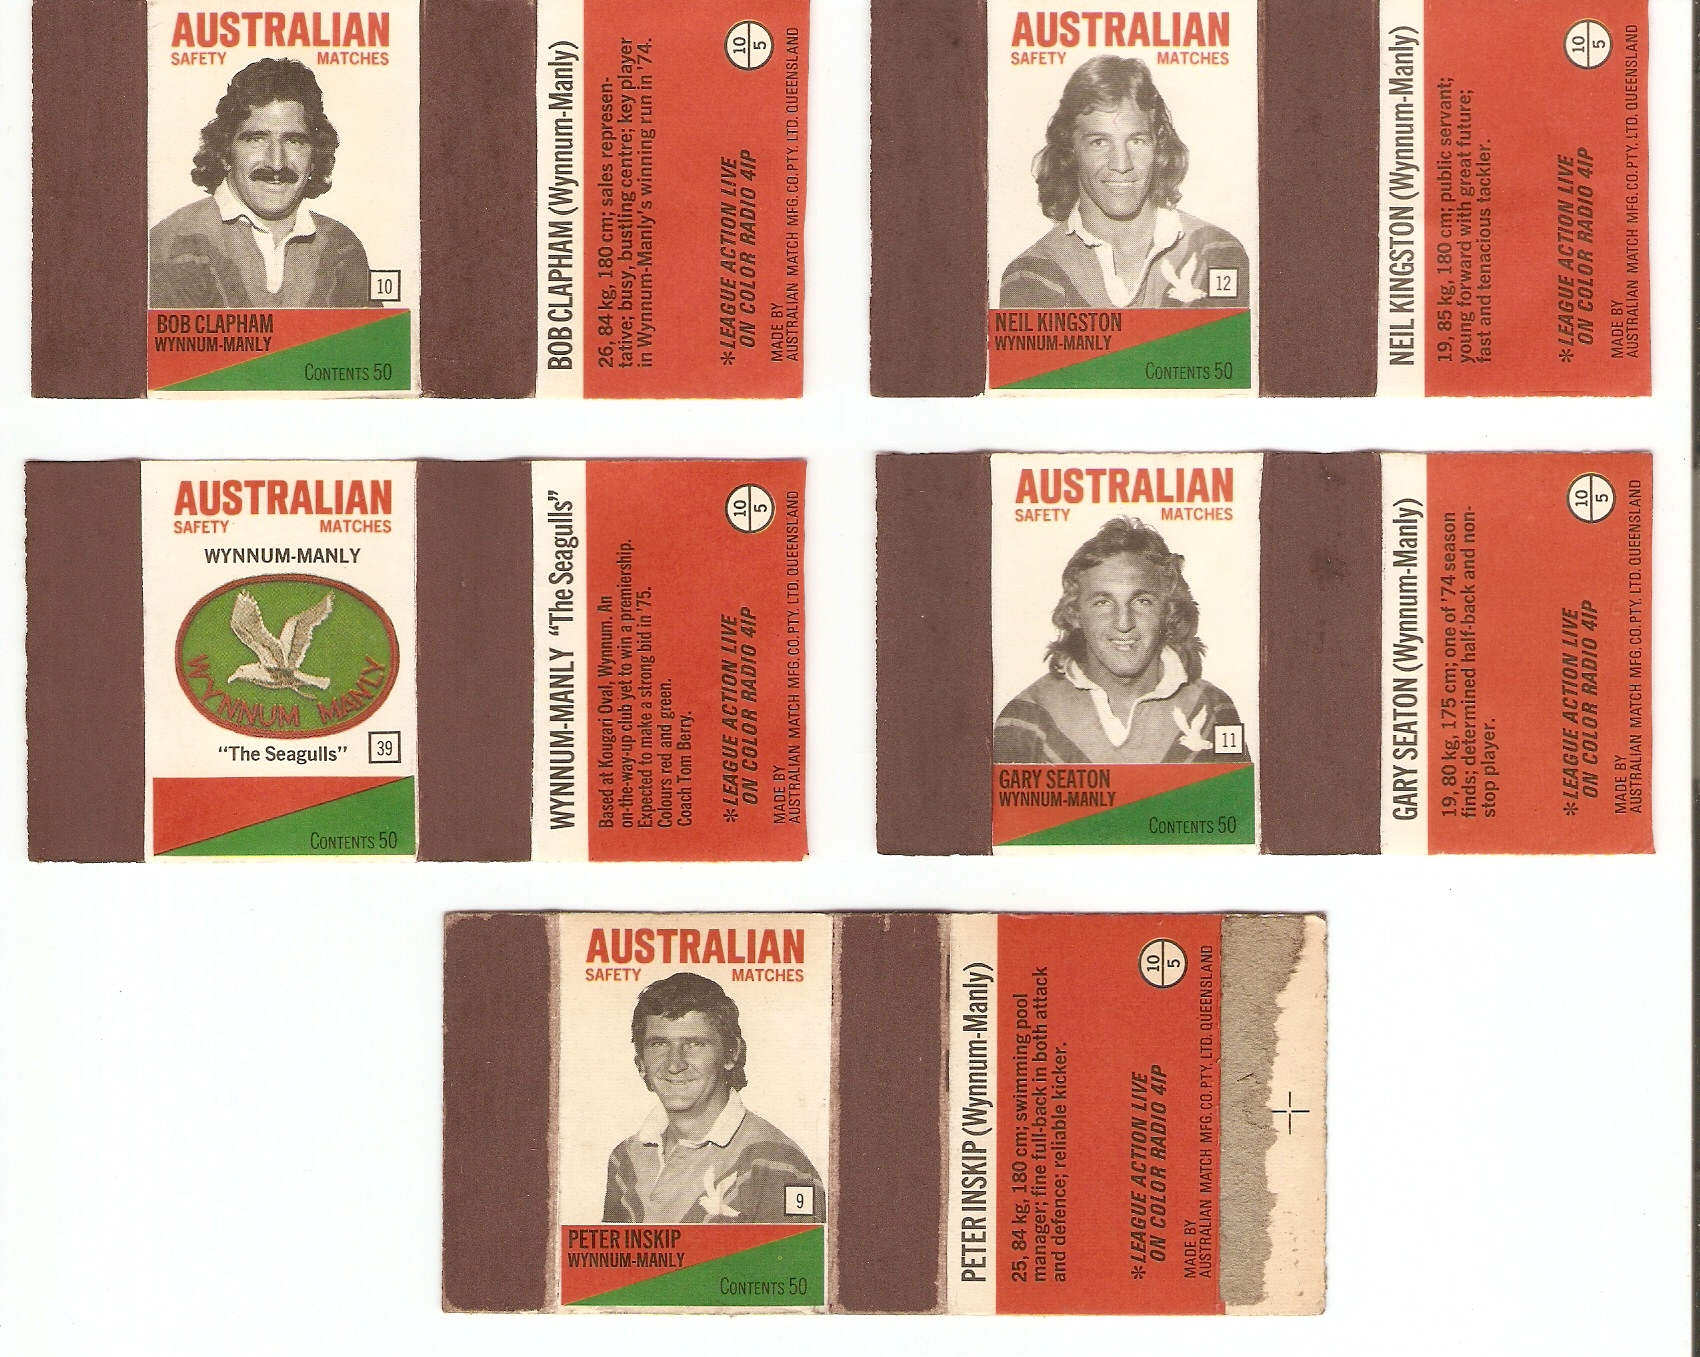 1975 Match Box Covers – Throwback Thursday History Article